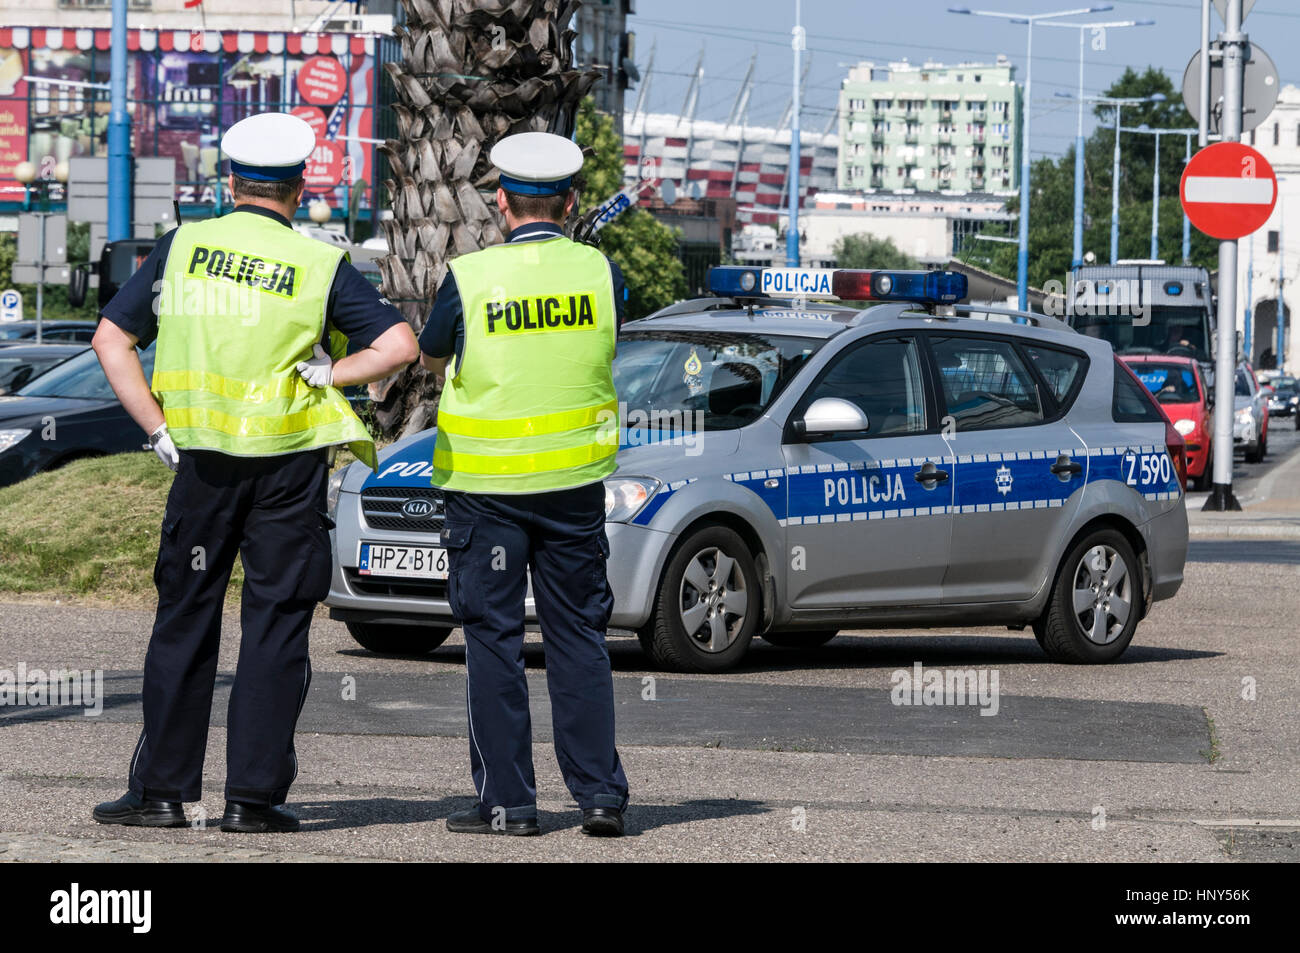 Warsaw city Police on traffic duty in the centre of Warsaw in Poland - Stock Image